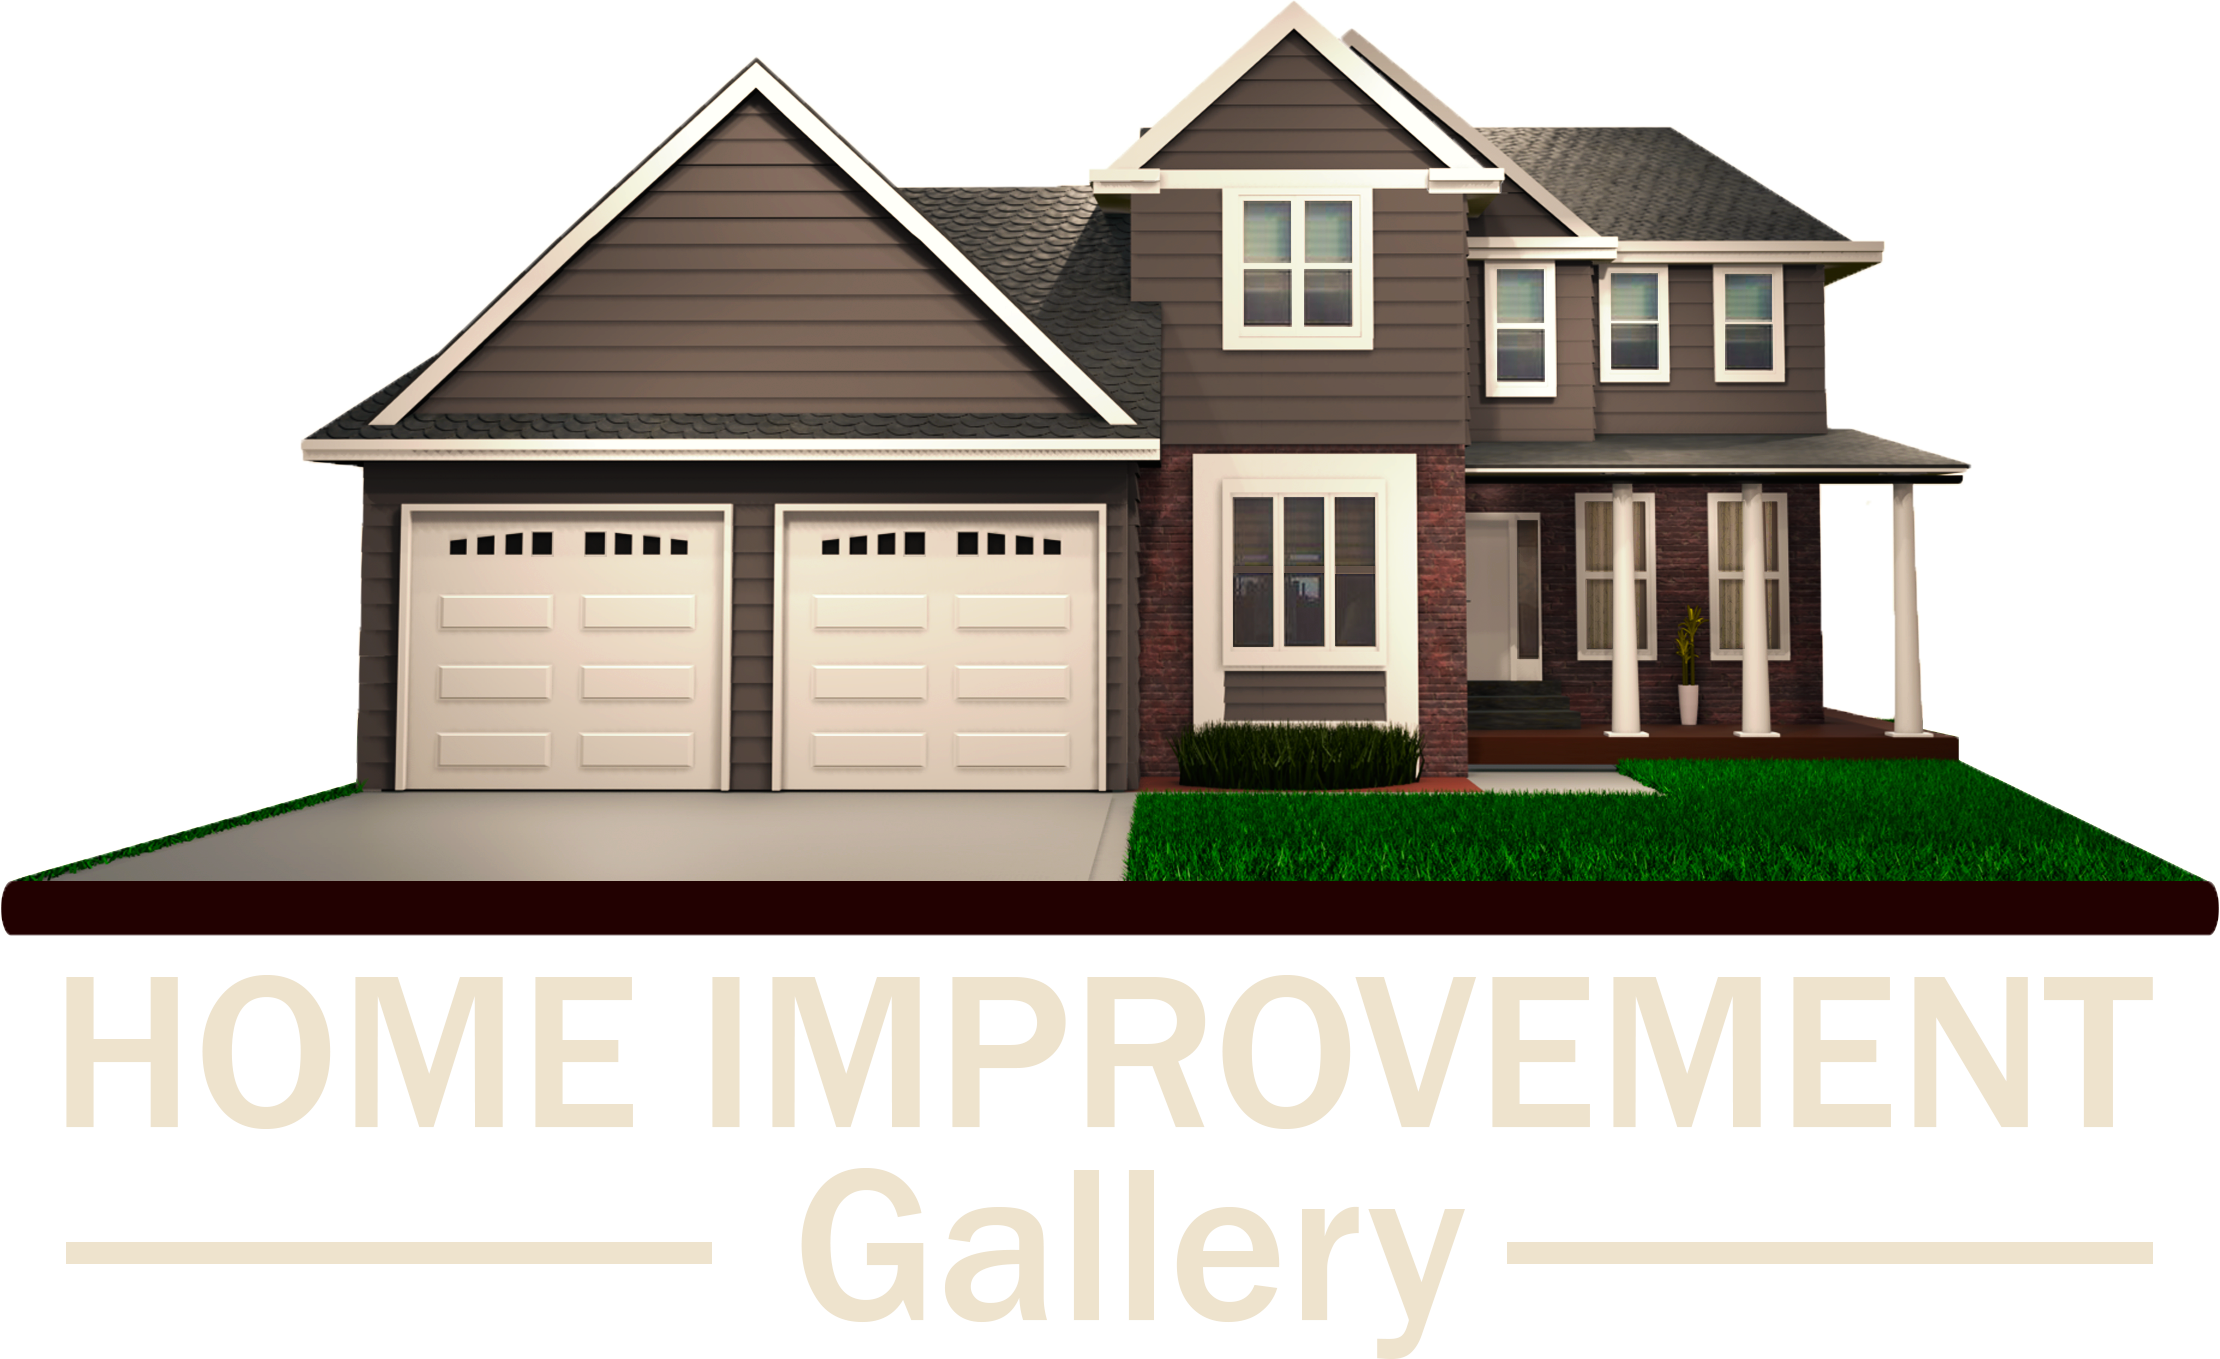 Home Improvement Gallery